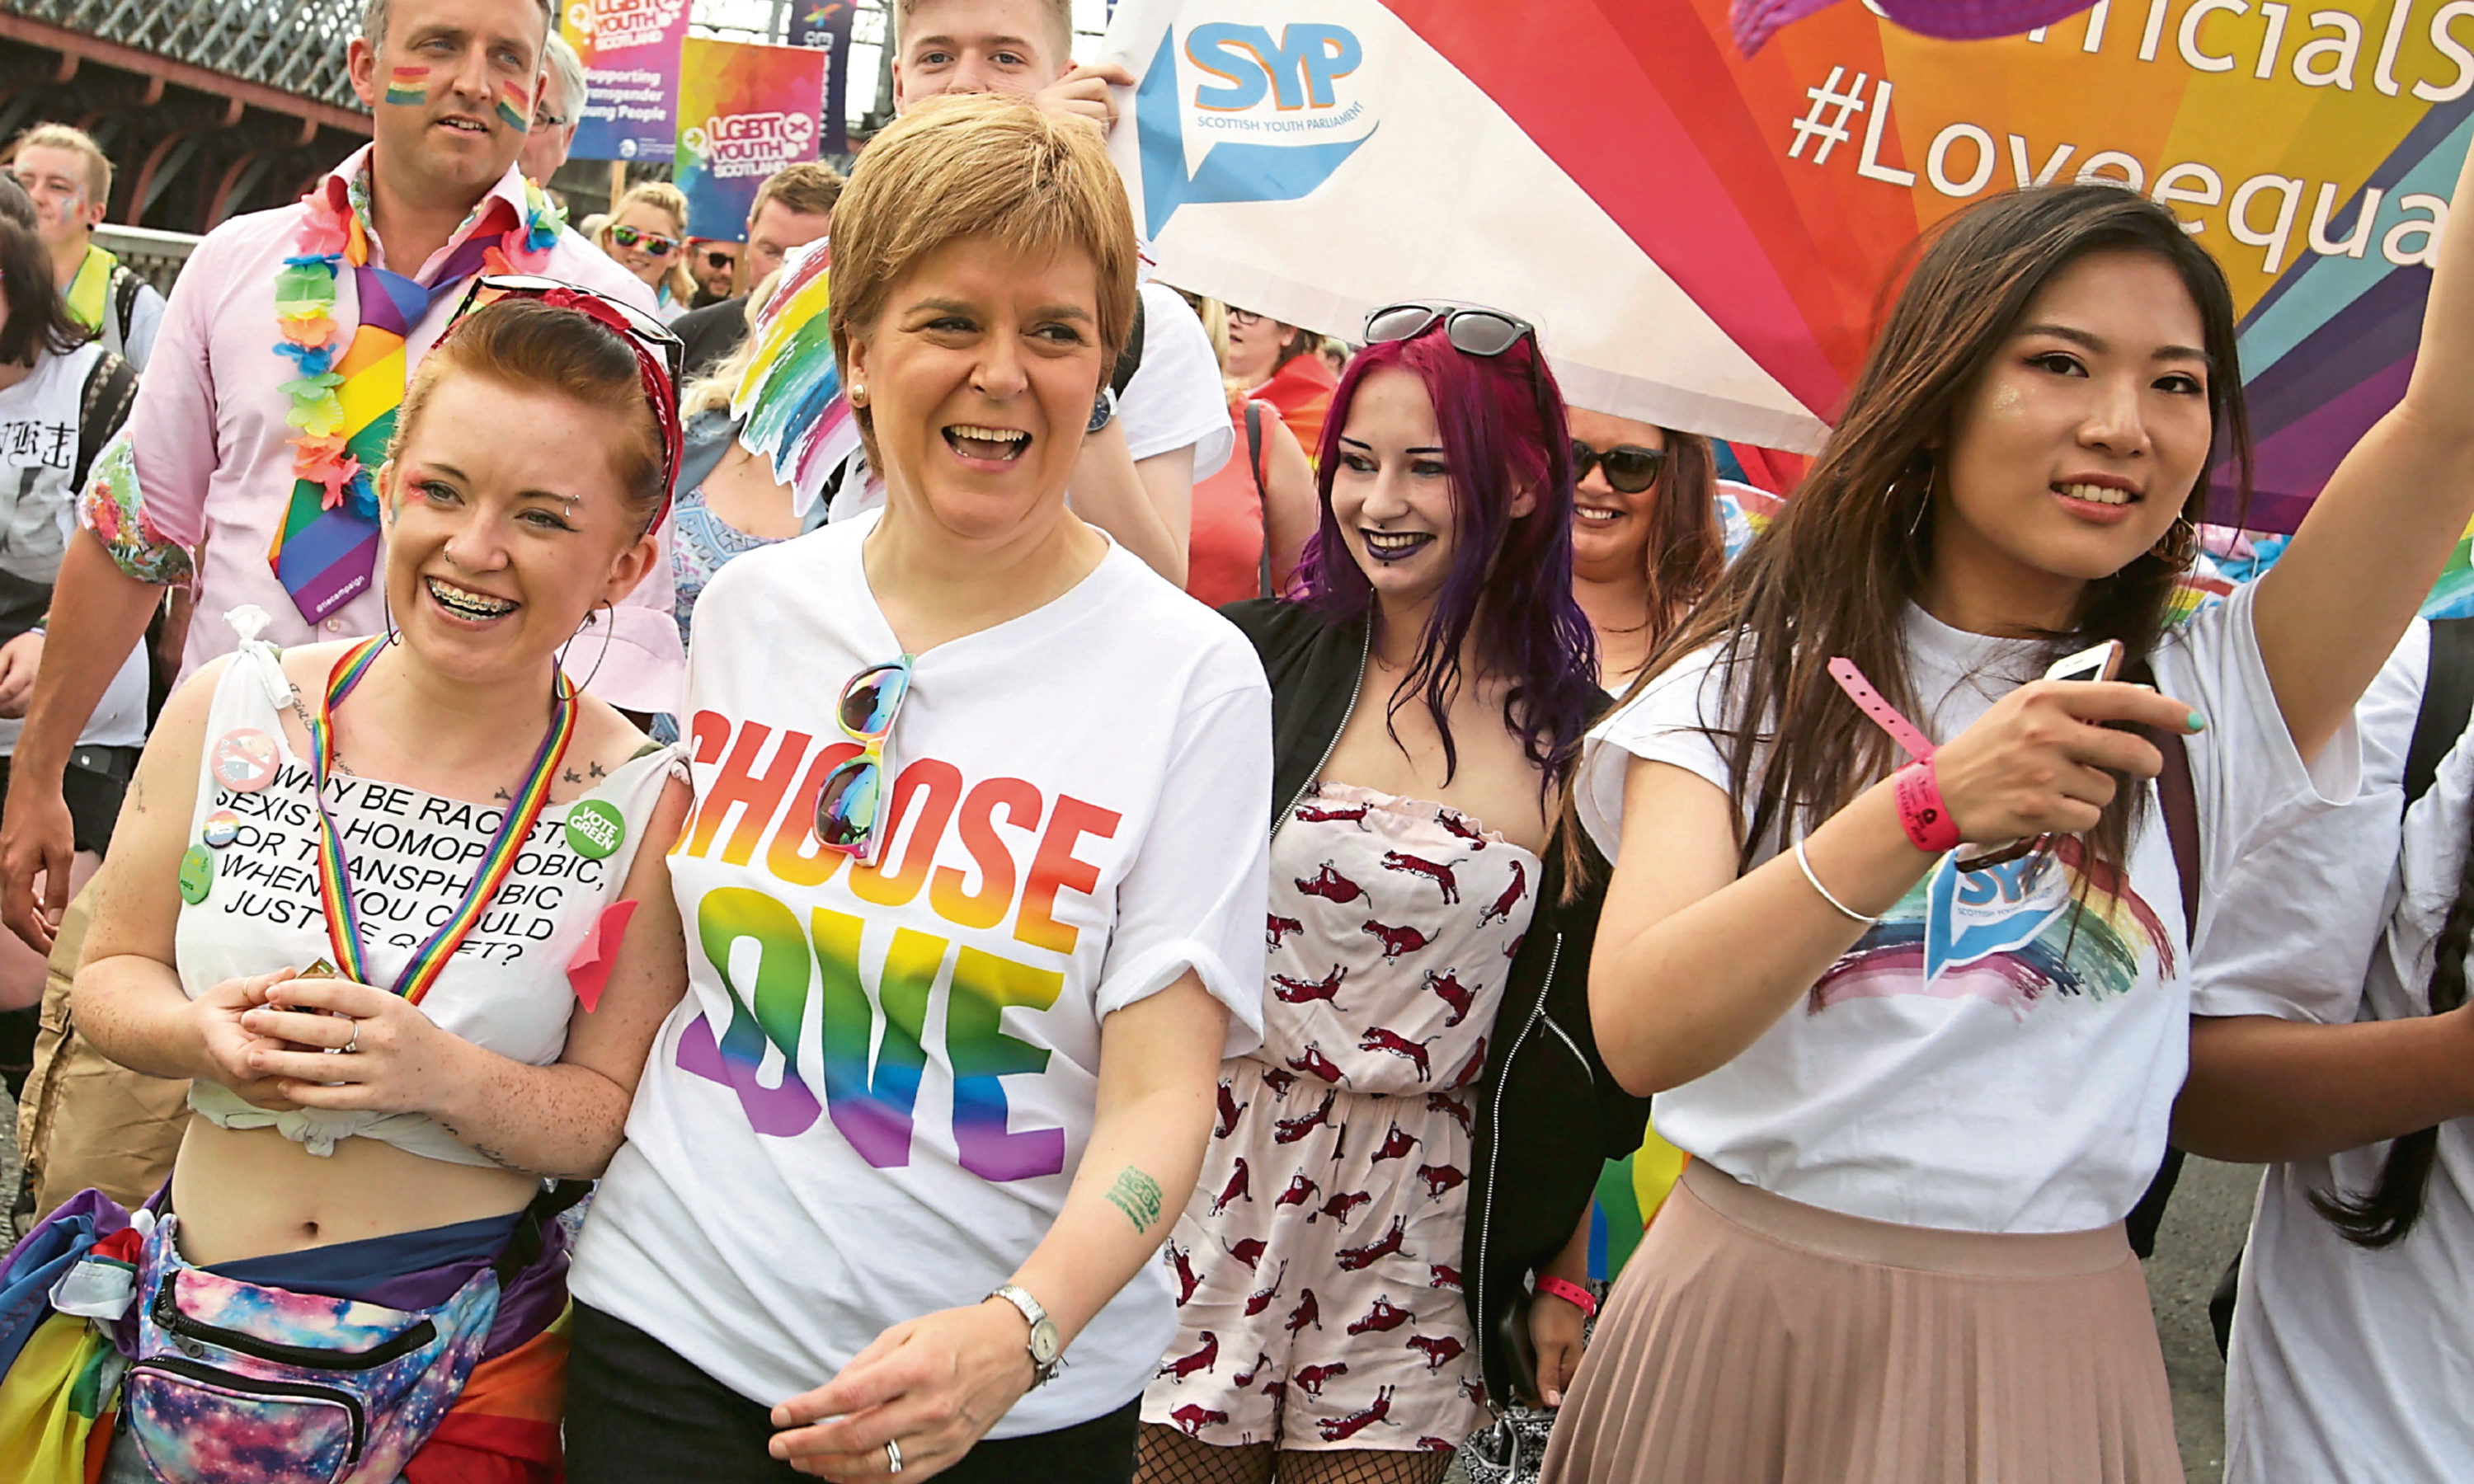 First Minister of Scotland Nicola Sturgeon joins  people taking part in Pride Glasgow